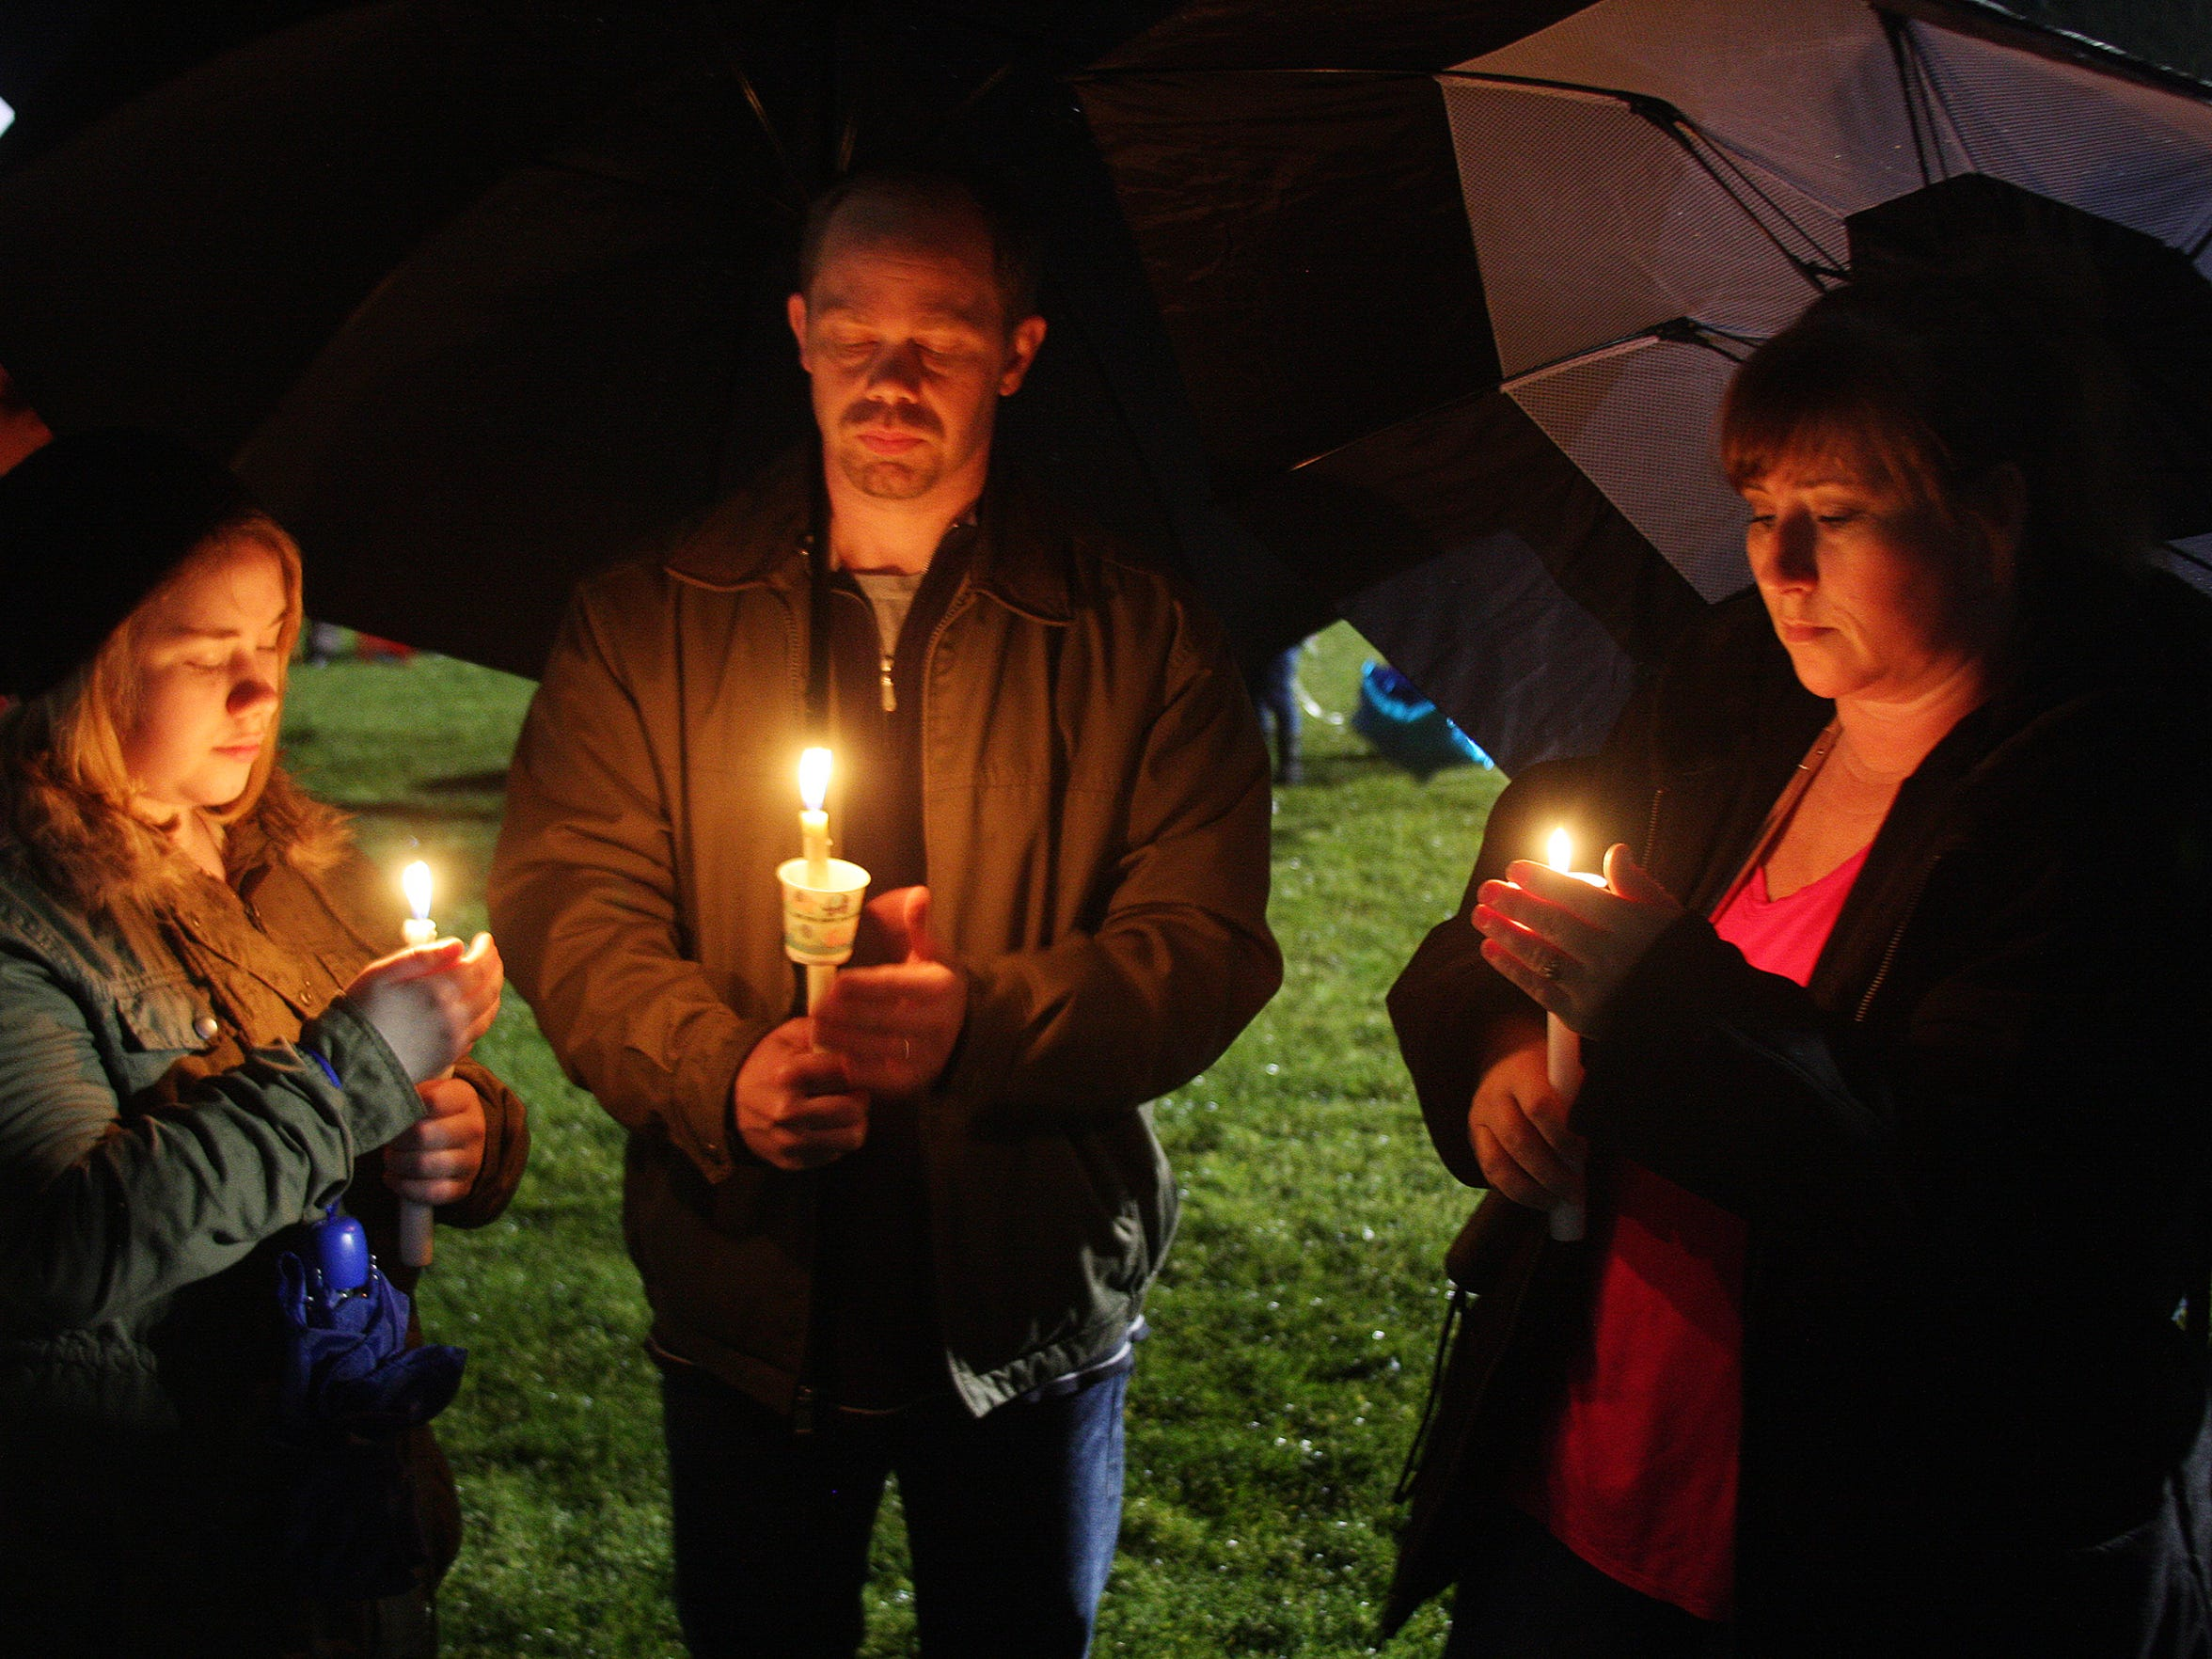 Cassie, Tim, and Carrie Stevens attend the candlelight vigil in honor and rememberance of Sabrina Almaraz and Kaleigh Woodman Sunday evening at Pennfield High School Football Field